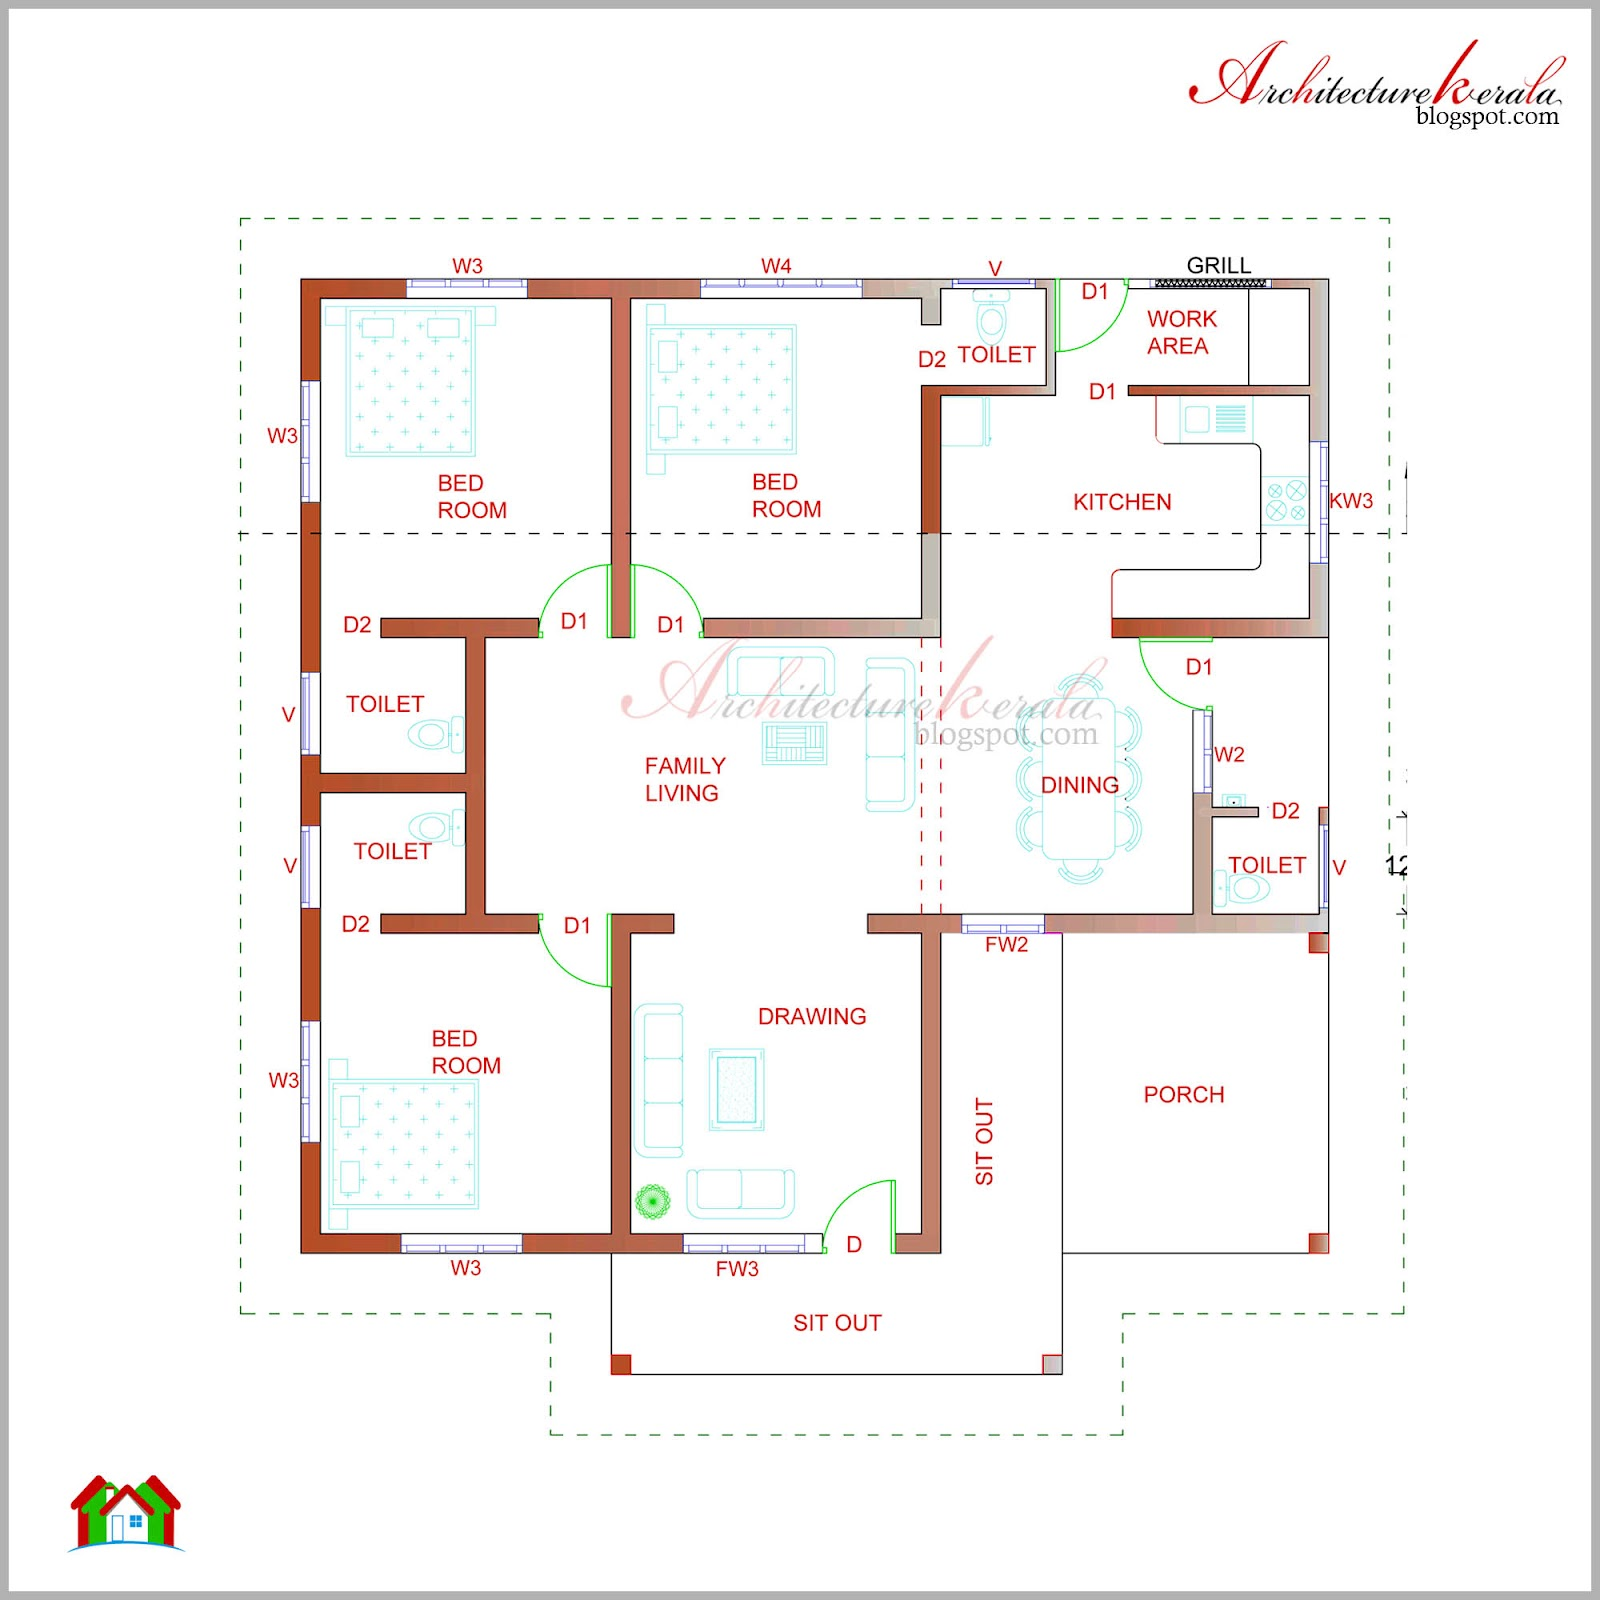 architecturekerala.blogspot.com+%2523+81+PLAN architecture kerala beautiful kerala elevation and its floor plan,Floor Plans Kerala Style Houses